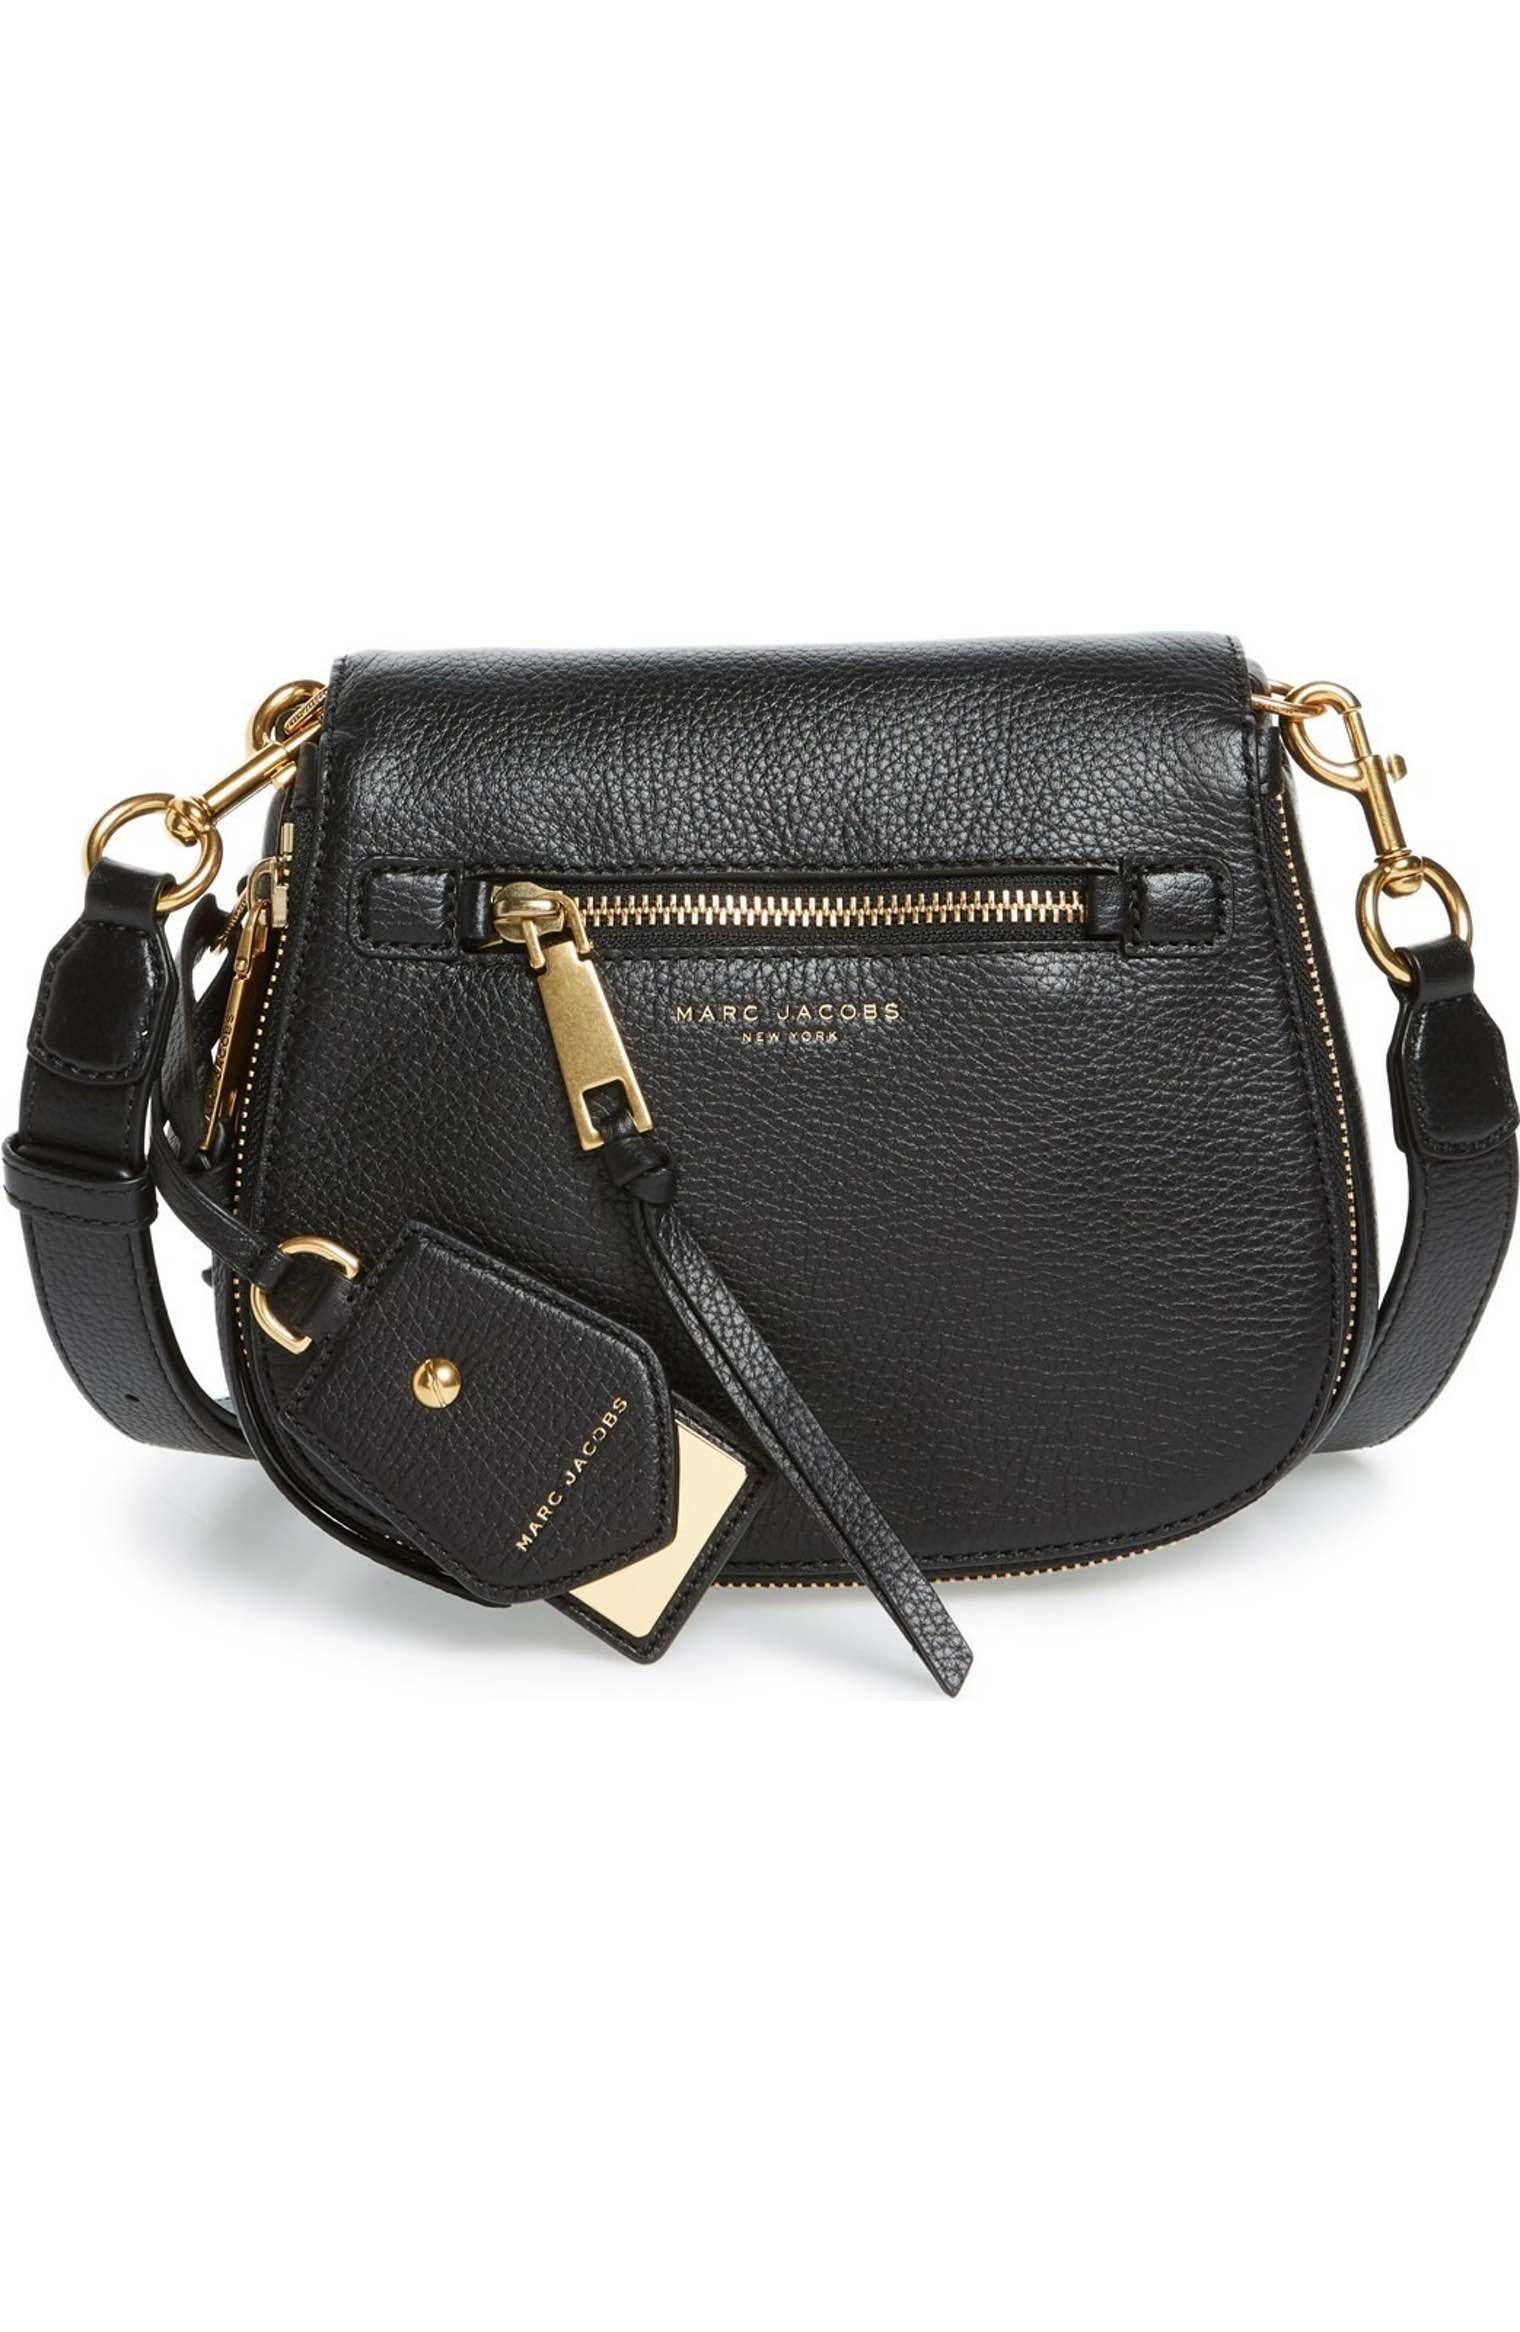 9bbe6654660c Main Image - MARC JACOBS Small Recruit Nomad Pebbled Leather Crossbody Bag